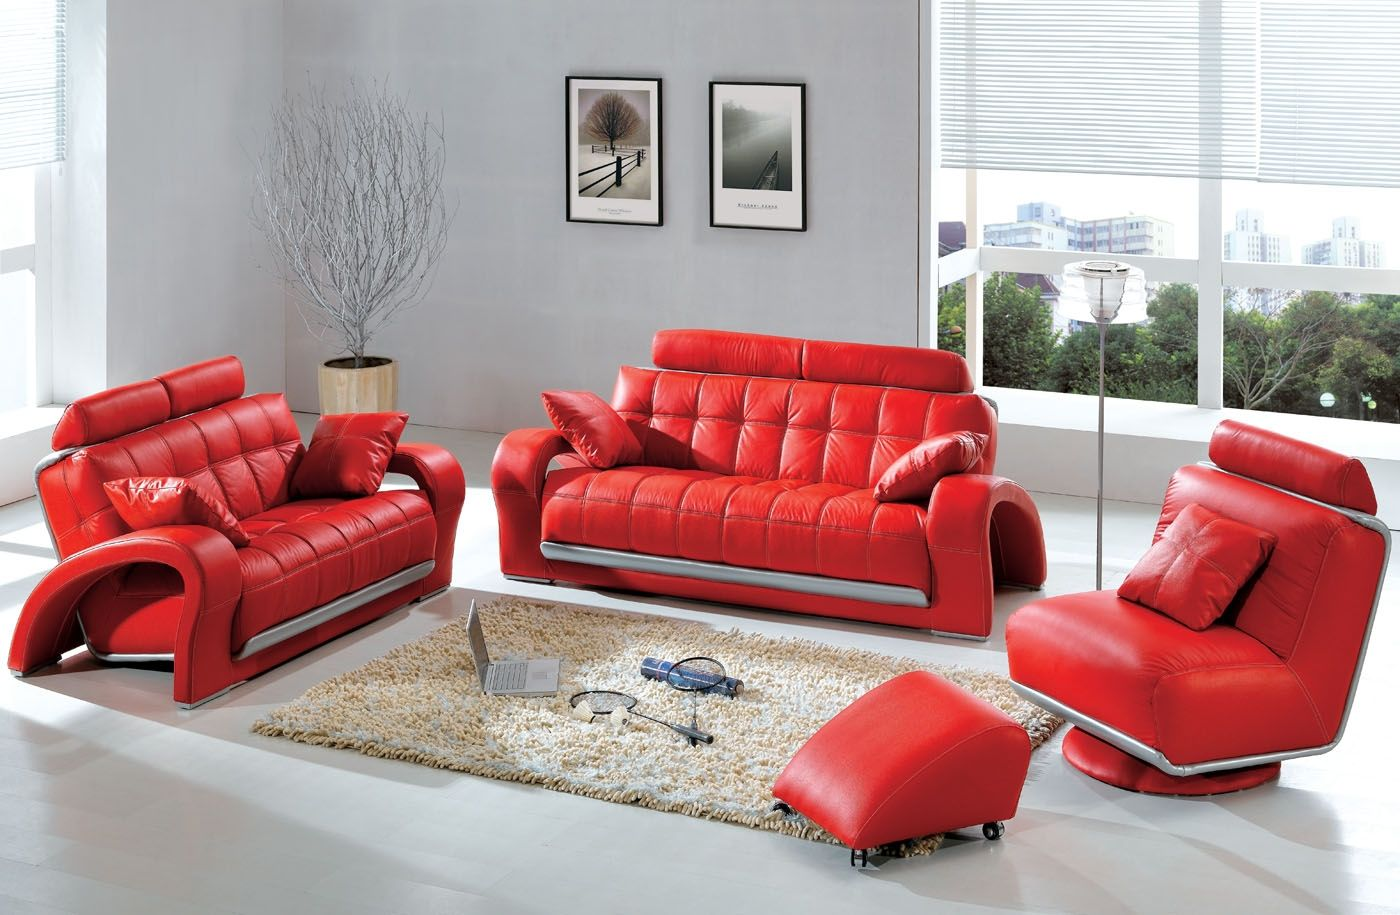 Living Room Furniture Contemporary Design Stunning Modern & Contemporary Leather Sofa & Sectional Sets  Funky Design Inspiration